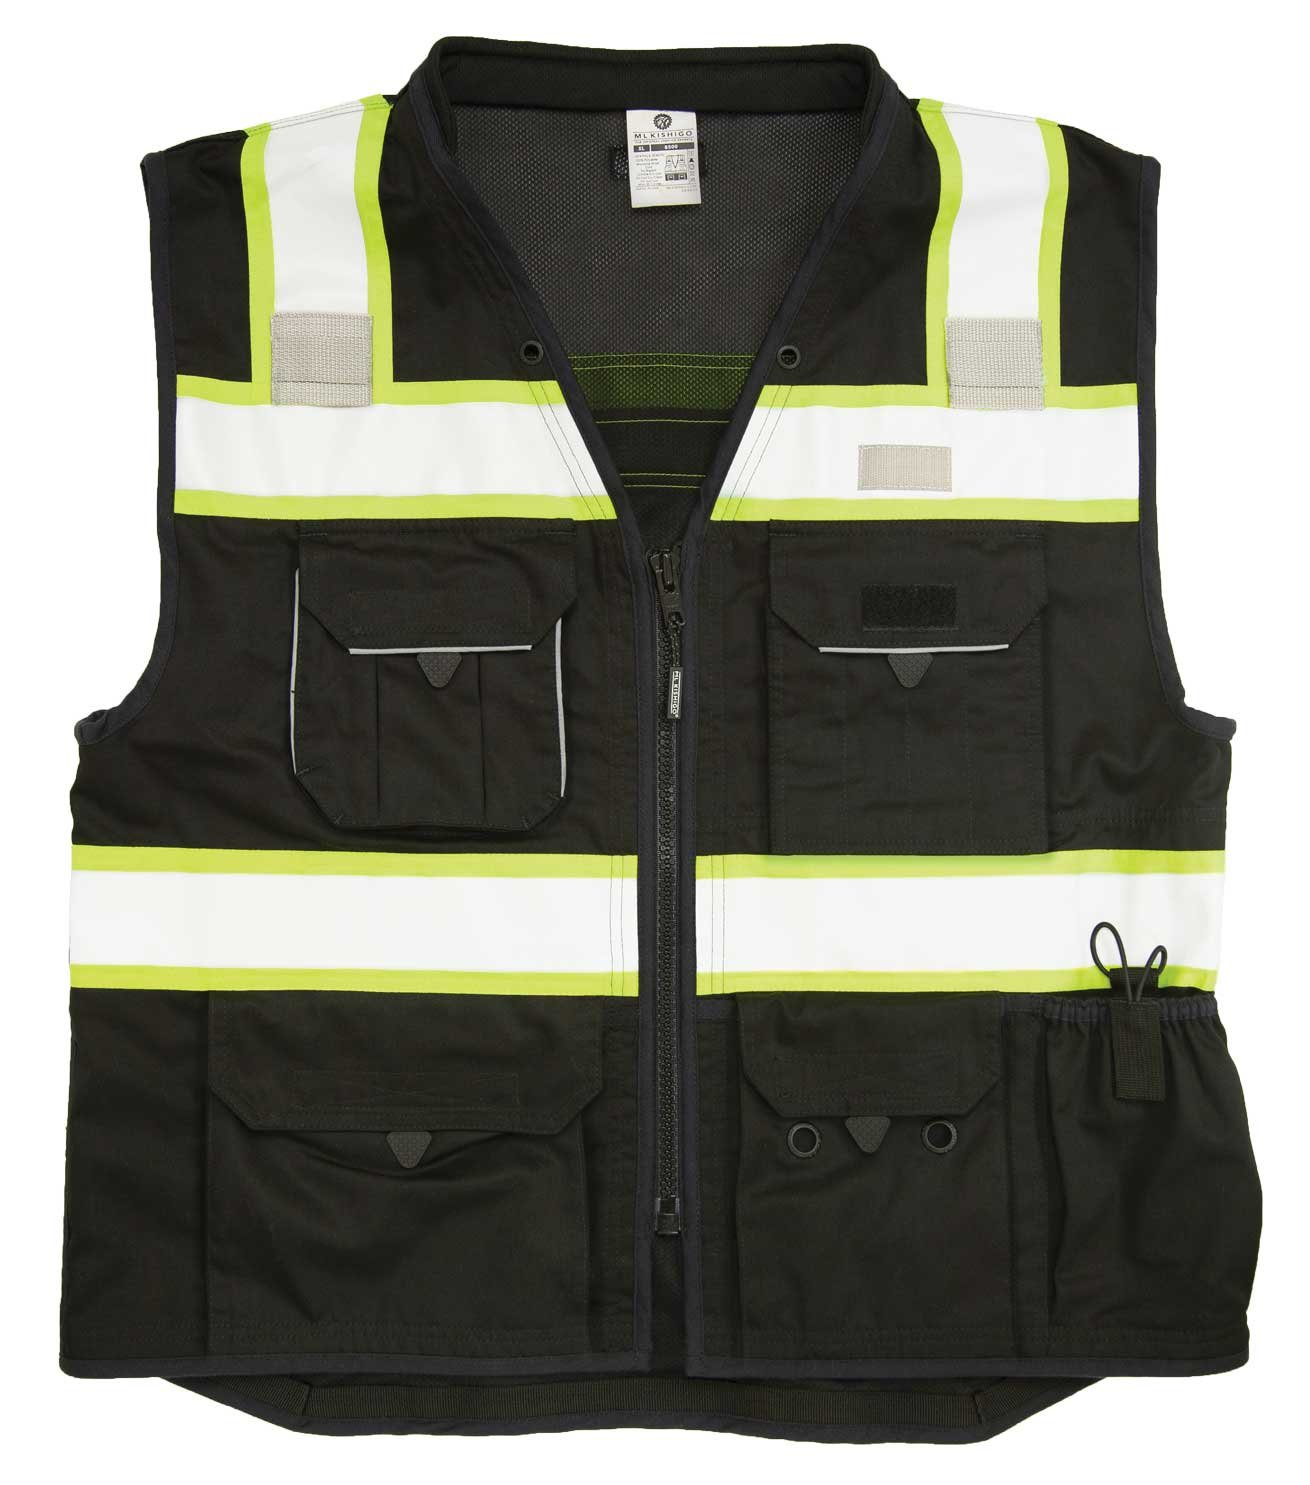 ML Kishigo - Black Heavy Duty Safety Vest Size: Medium